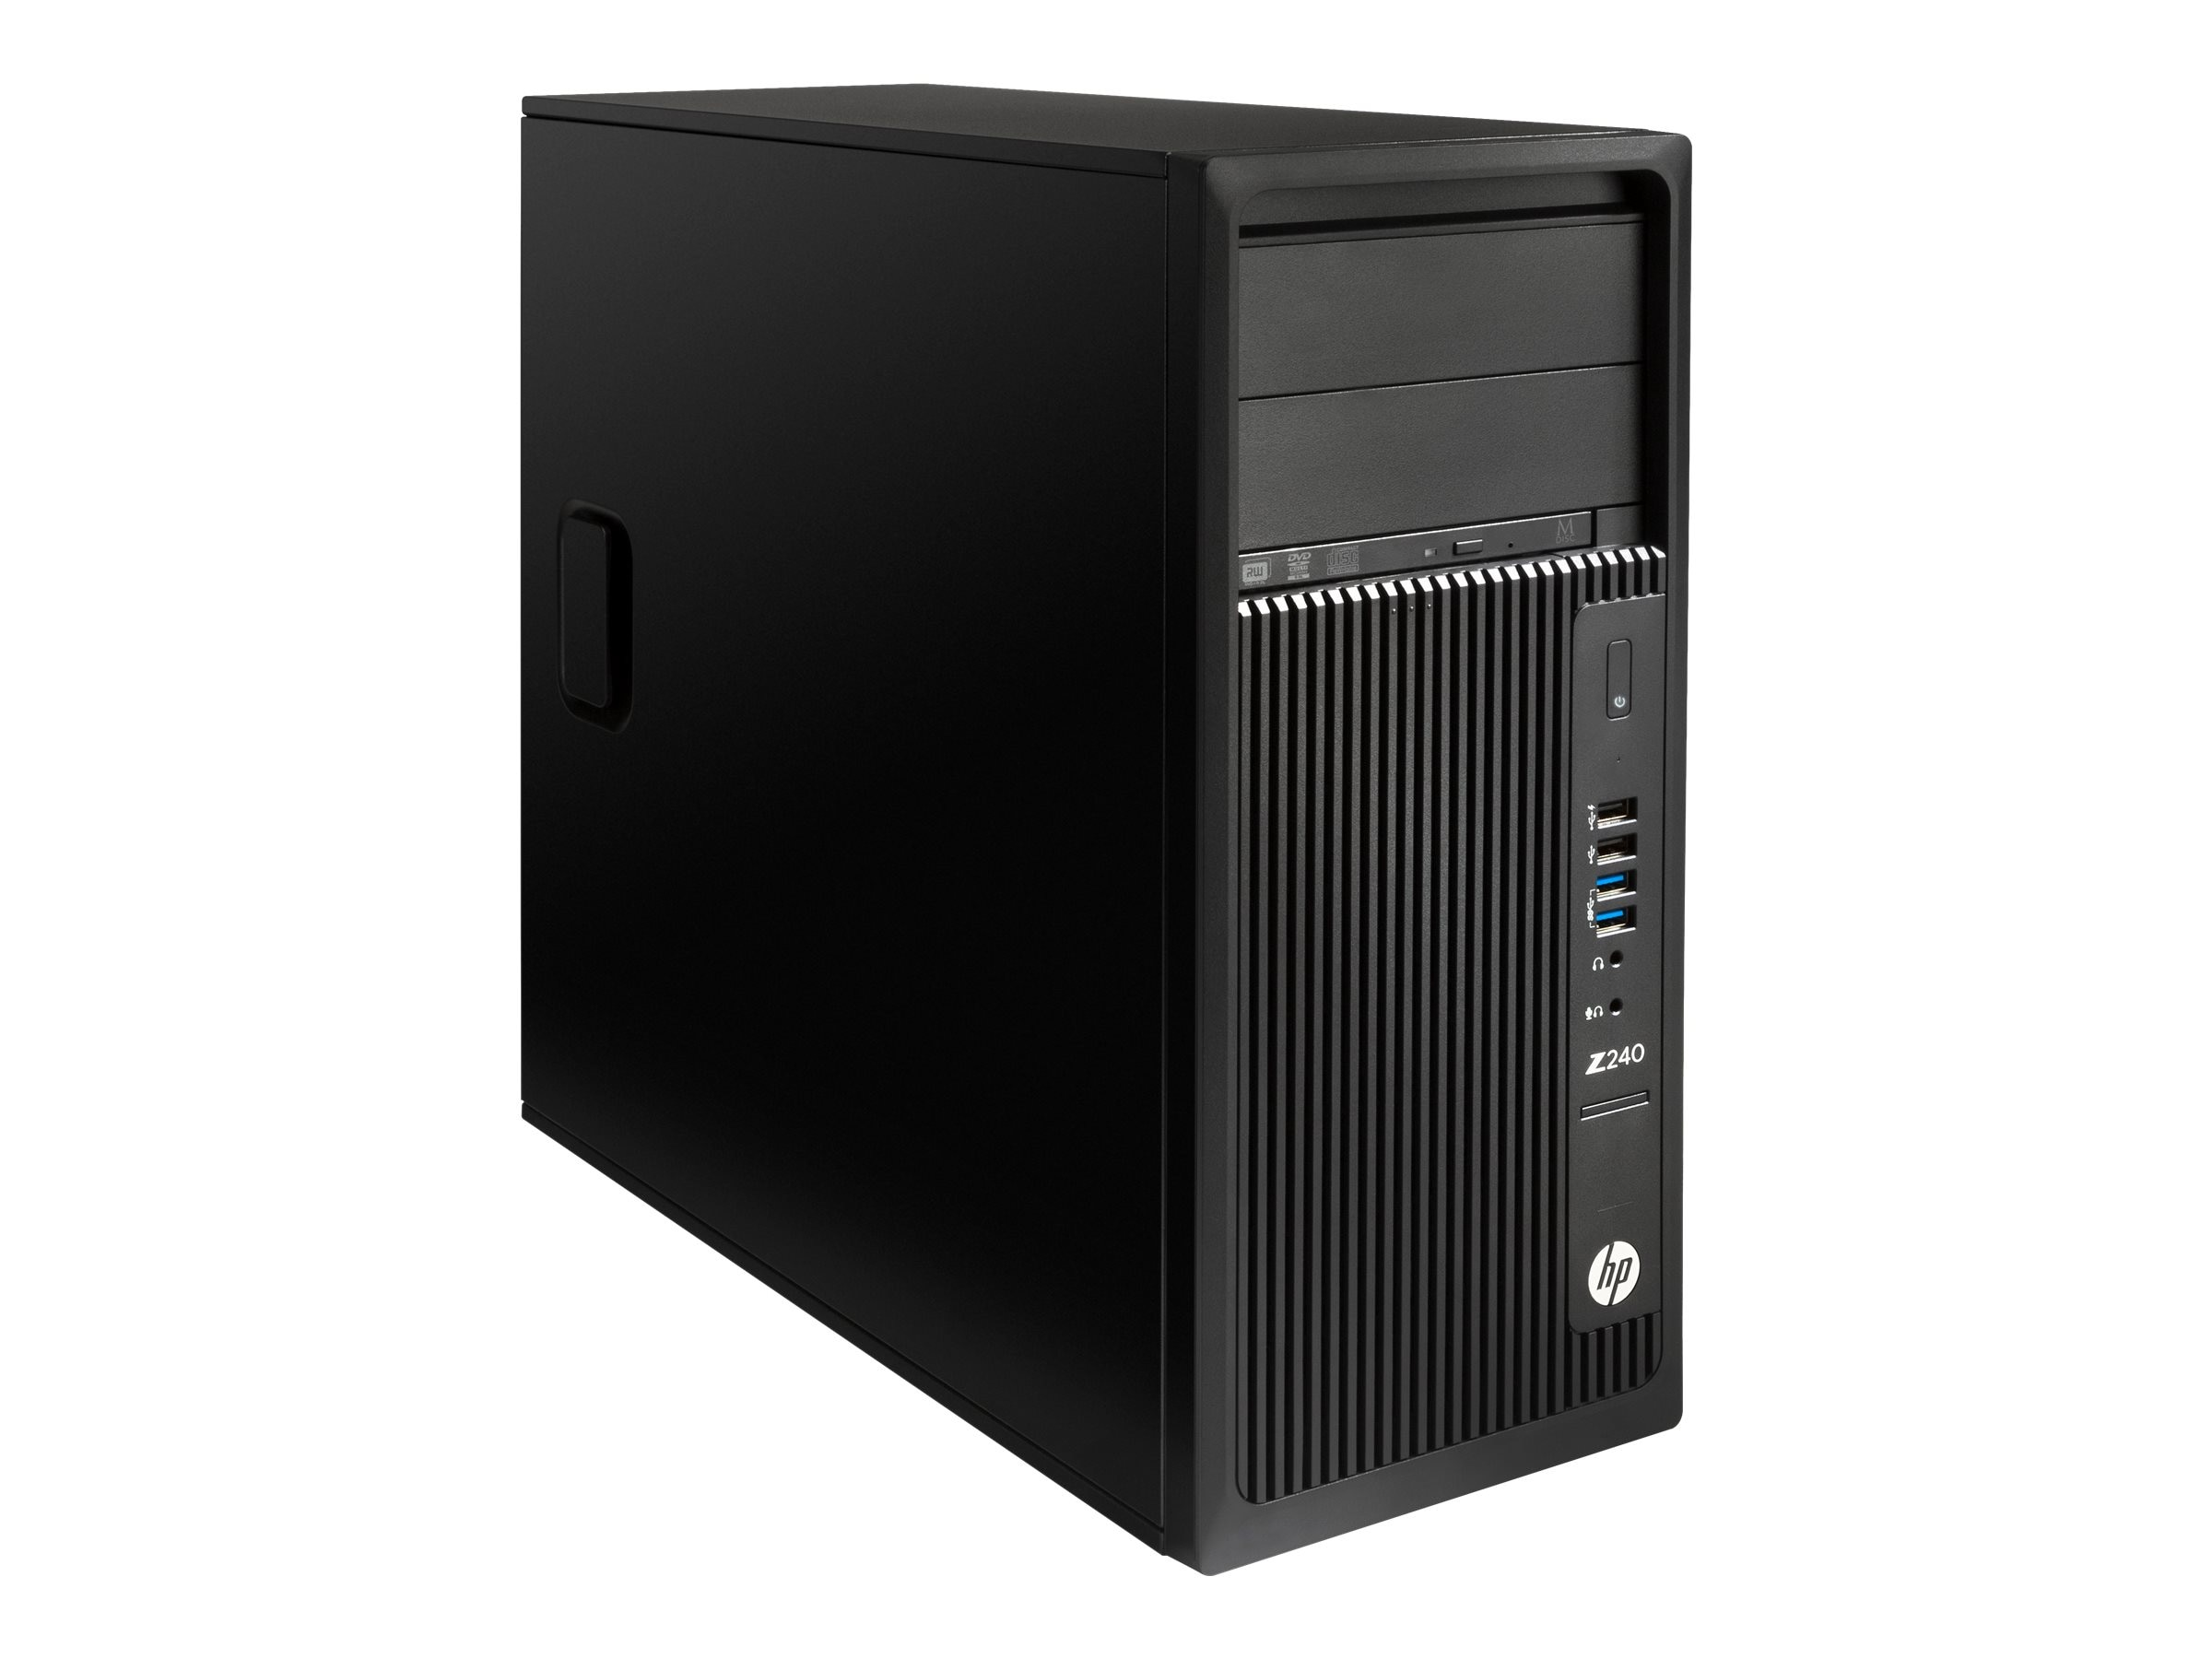 HP Z240 3.4GHz Core i7 Microsoft Windows 7 Professional 64-bit Edition   Windows 10 Pro, T4N77UT#ABA